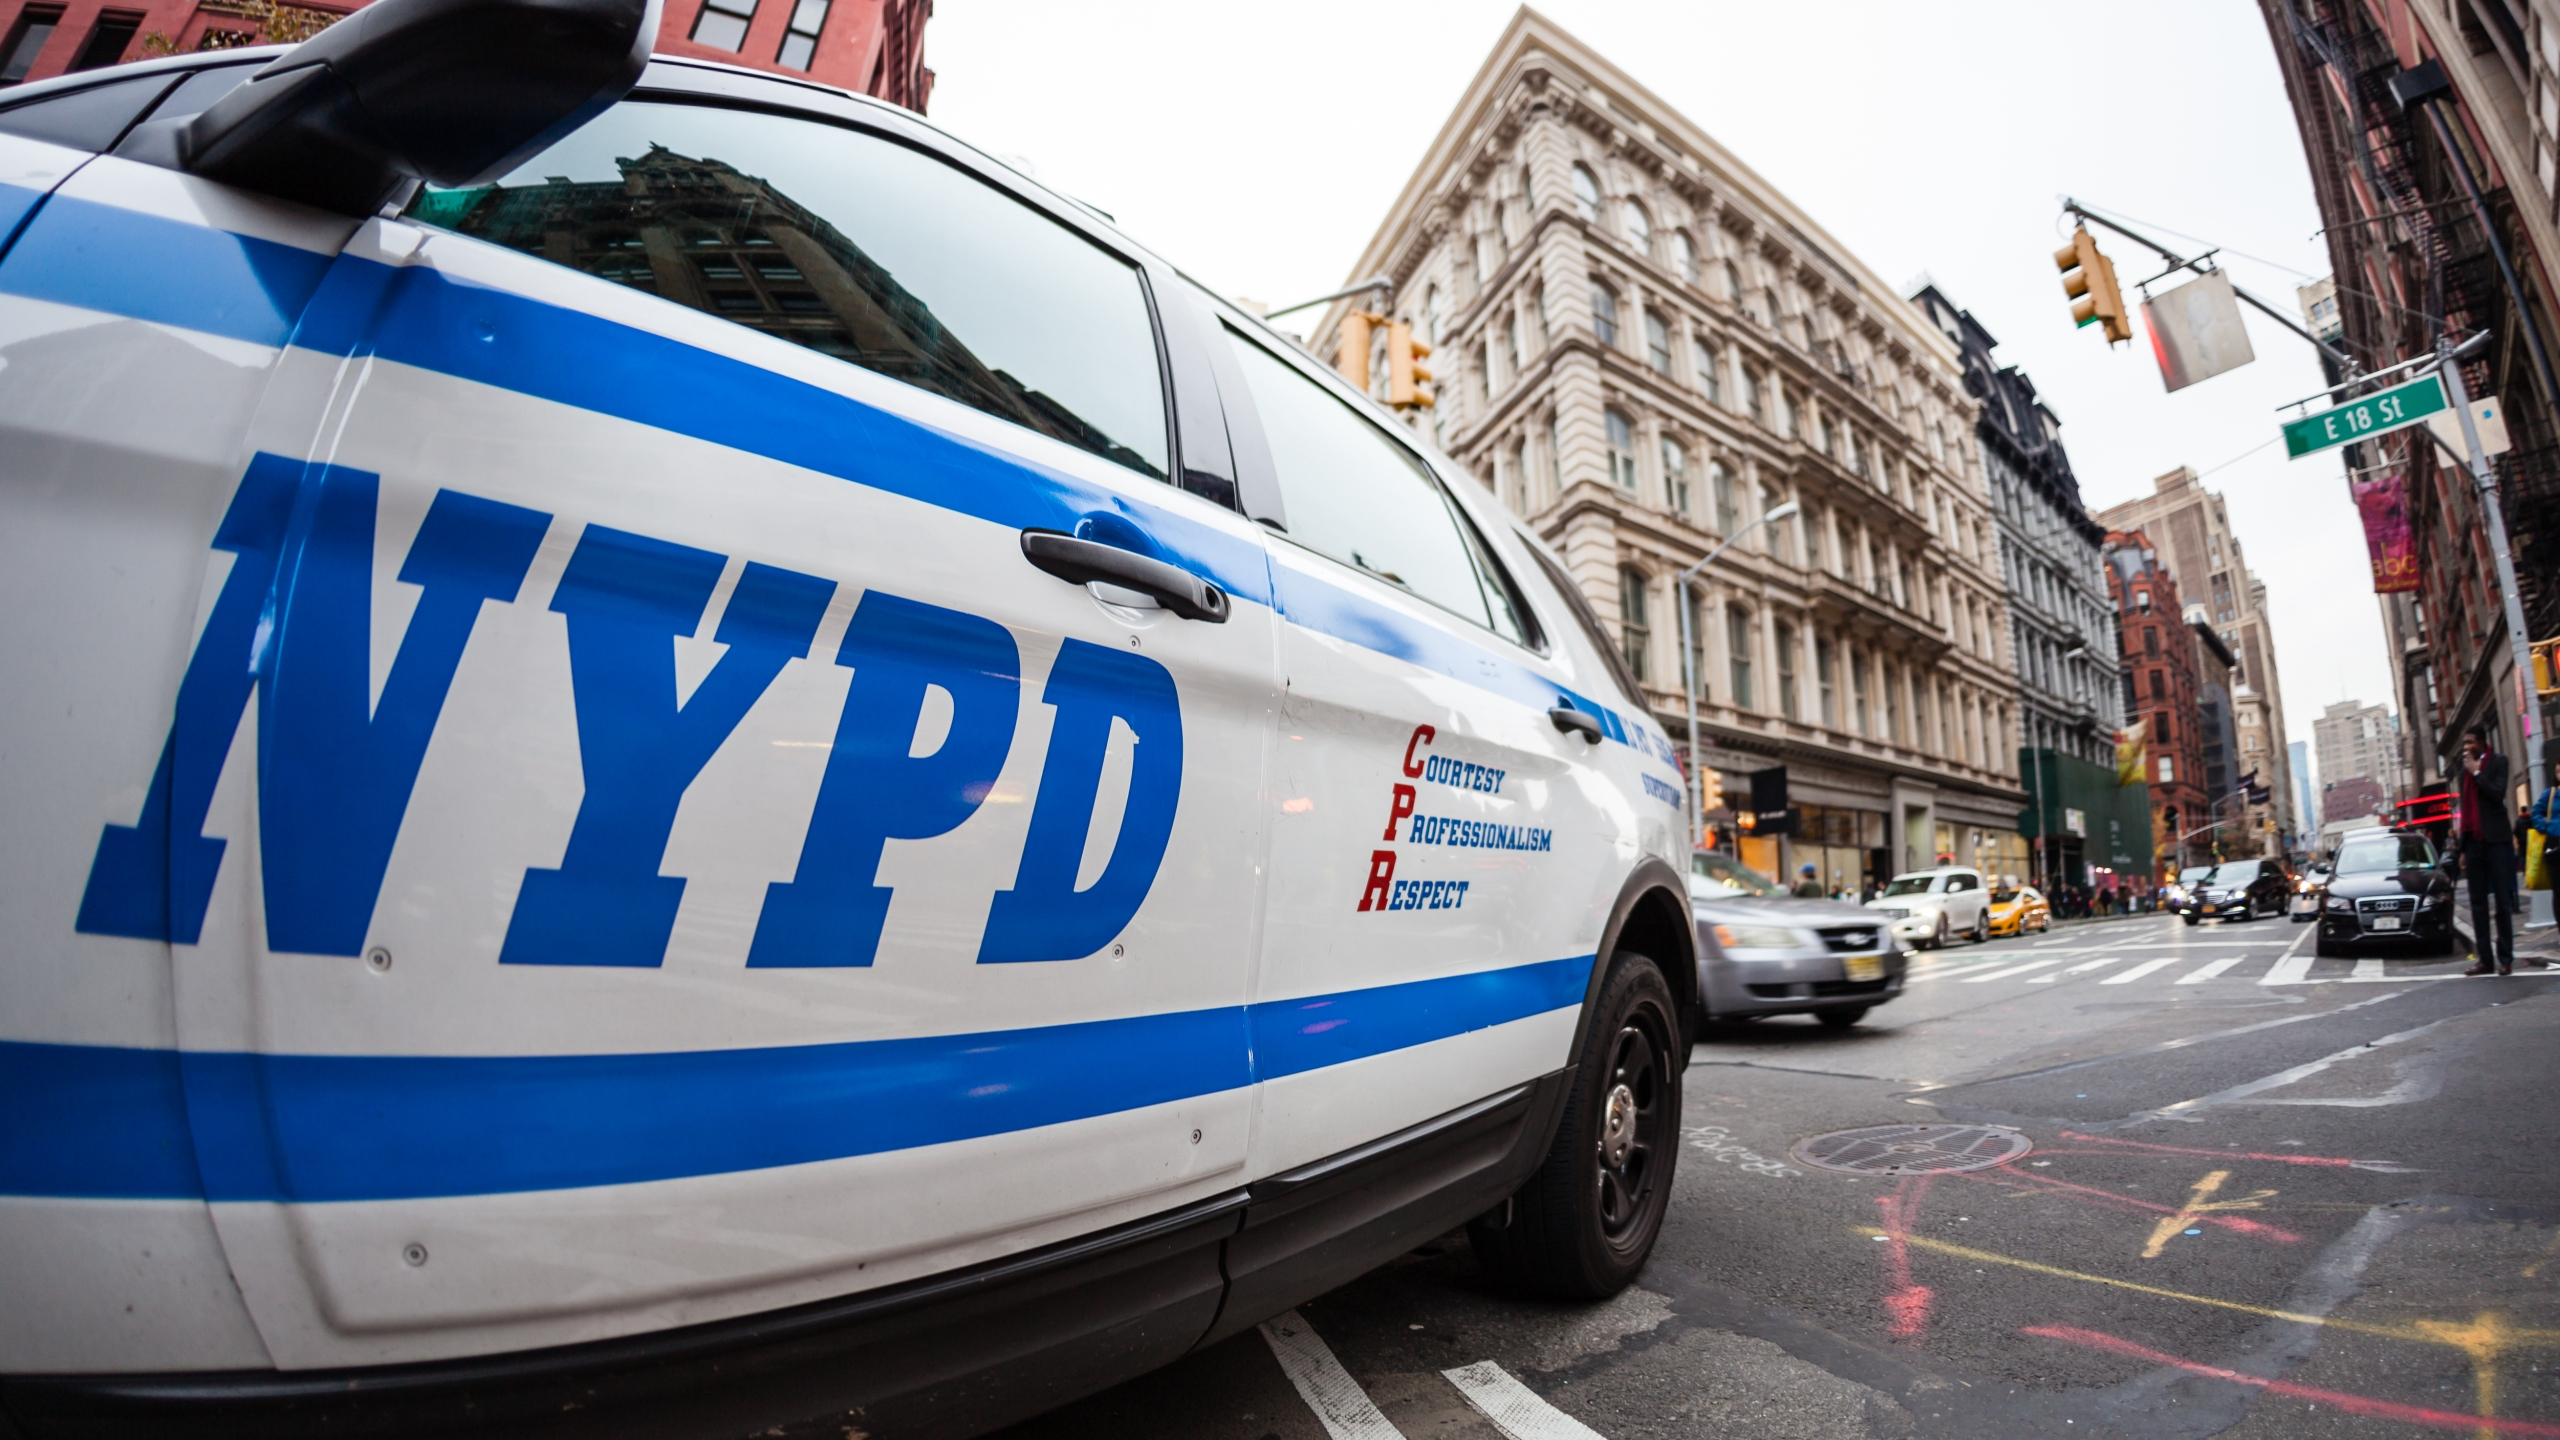 An NYPD police car is seen in this undated file photo. (Getty Images)